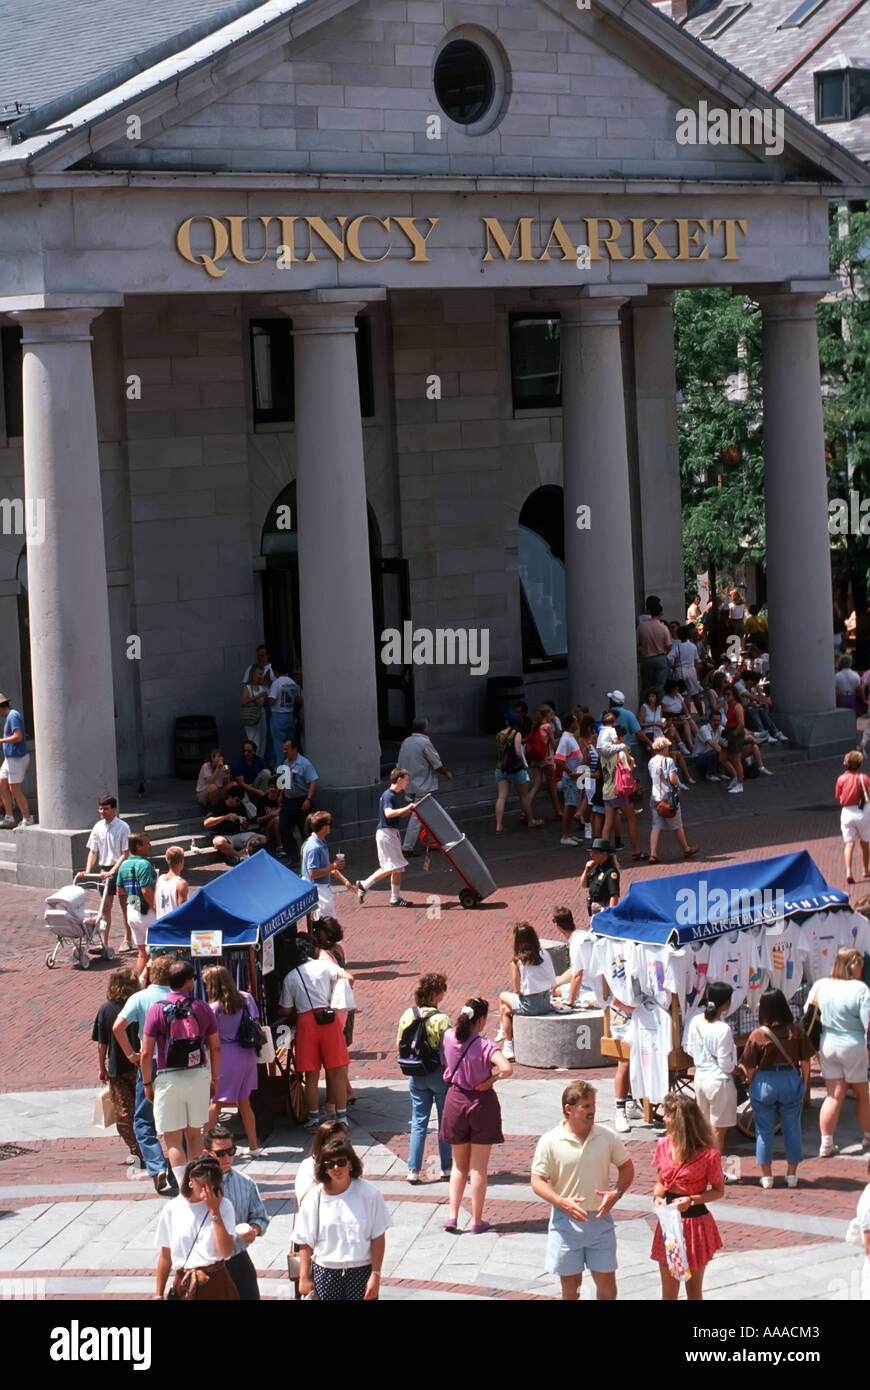 Quincy Market shopping district area of Boston Massachusetts MA - Stock Image